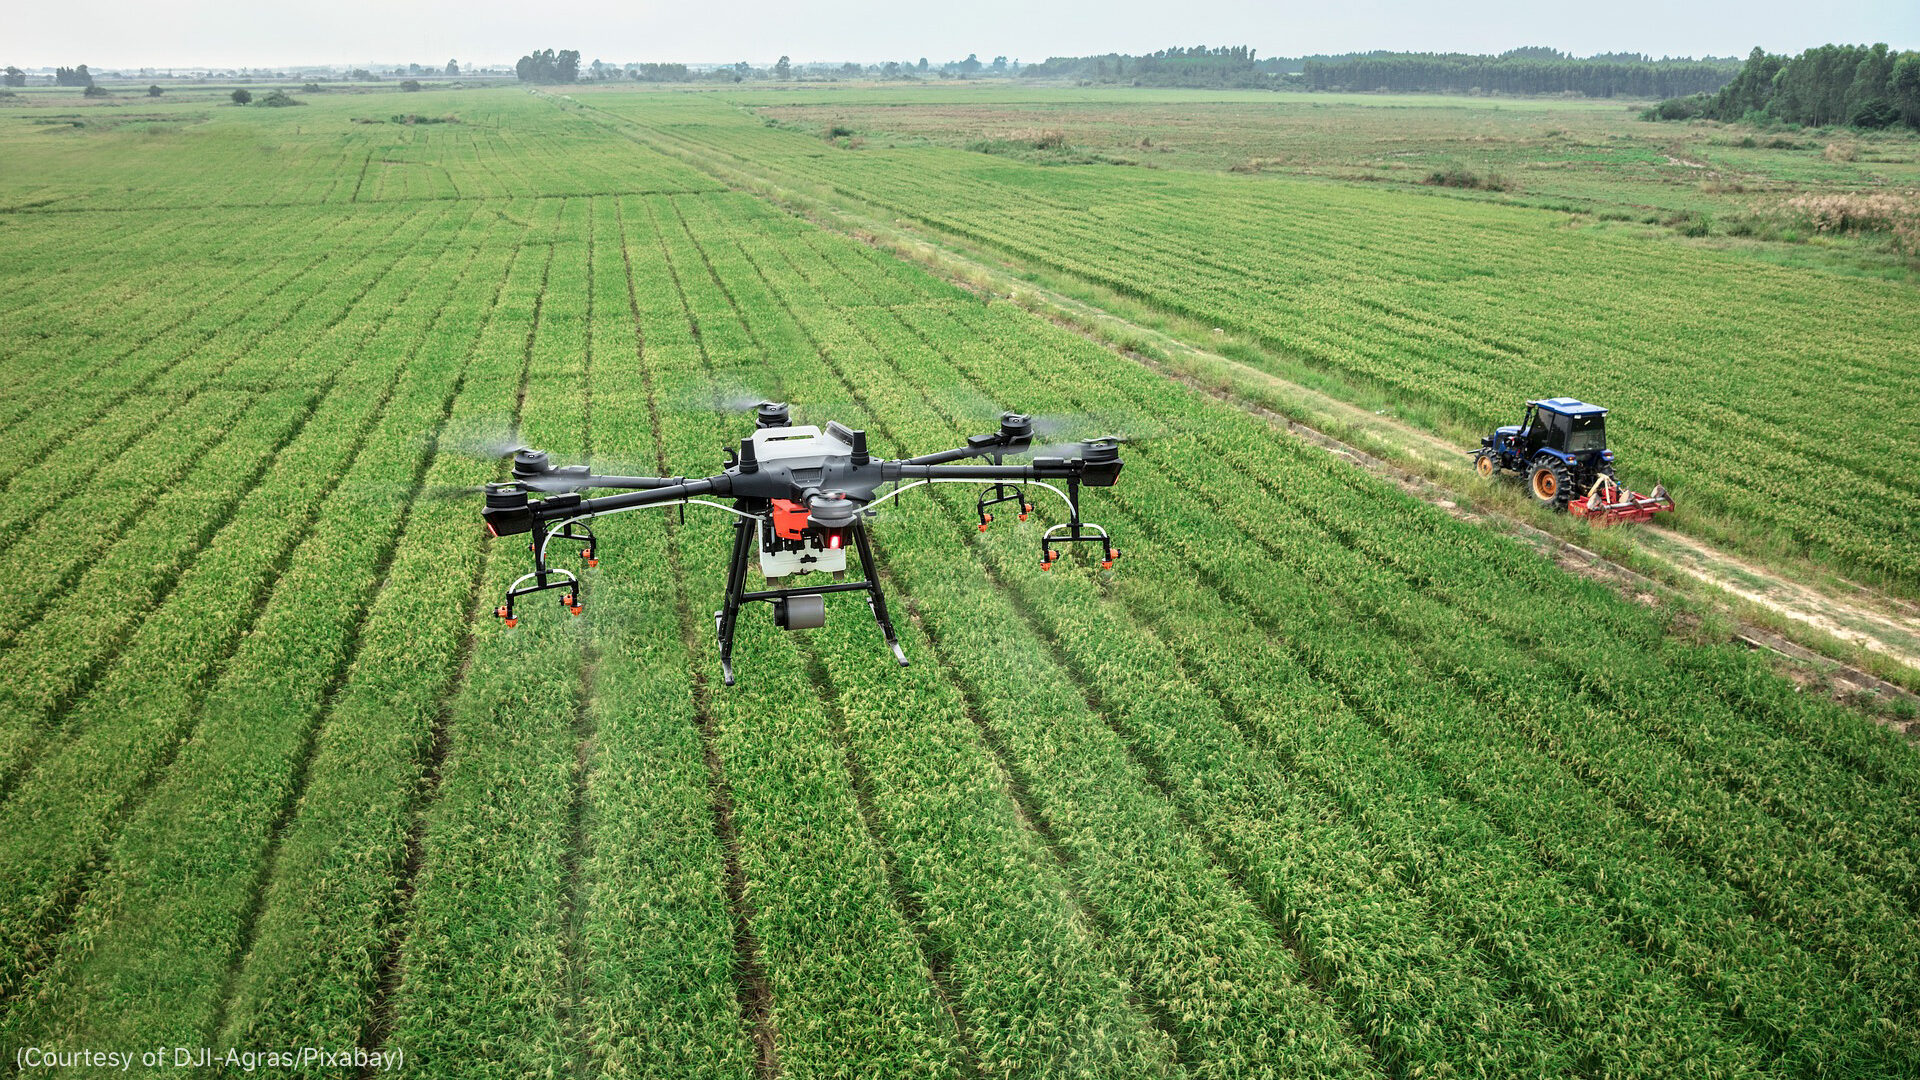 Drones monitor agricultural field conditions in real-time.